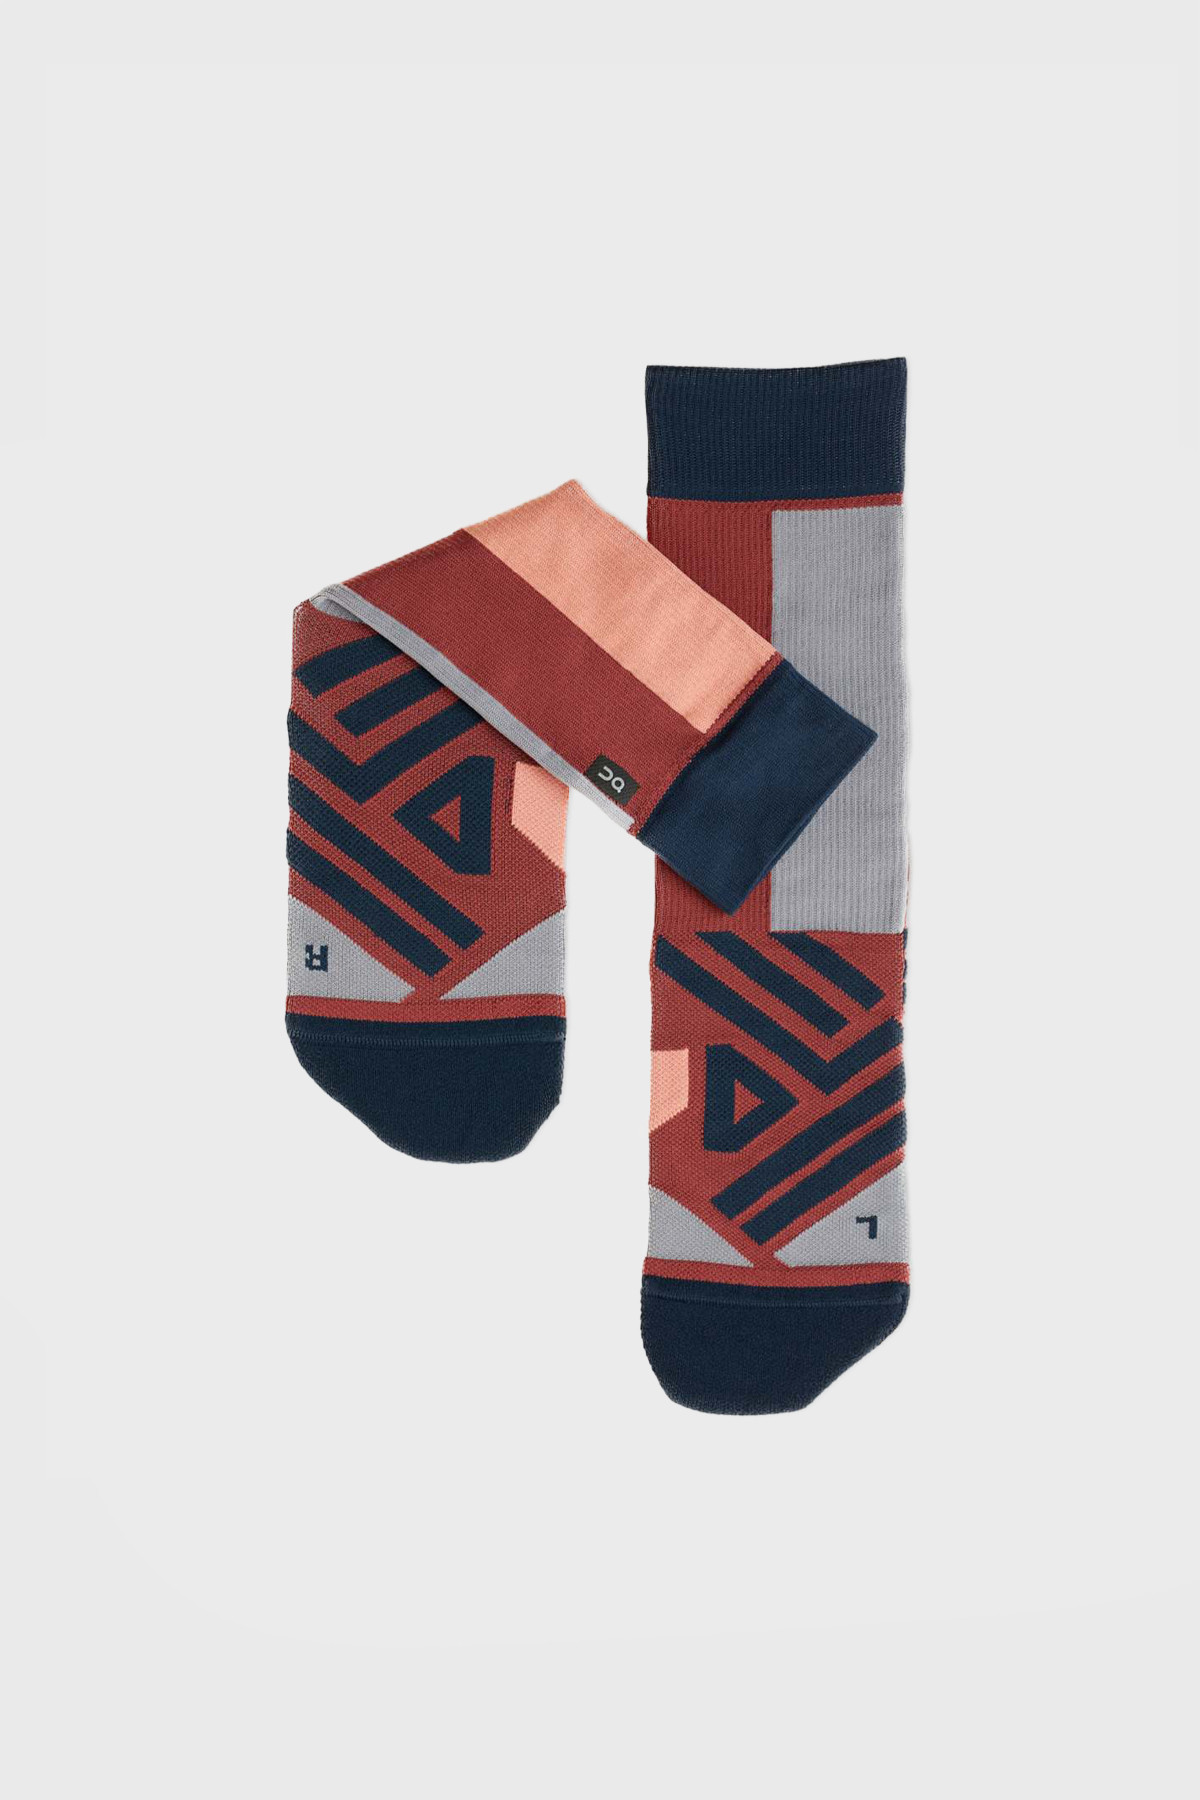 On - High Sock - Ox Navy